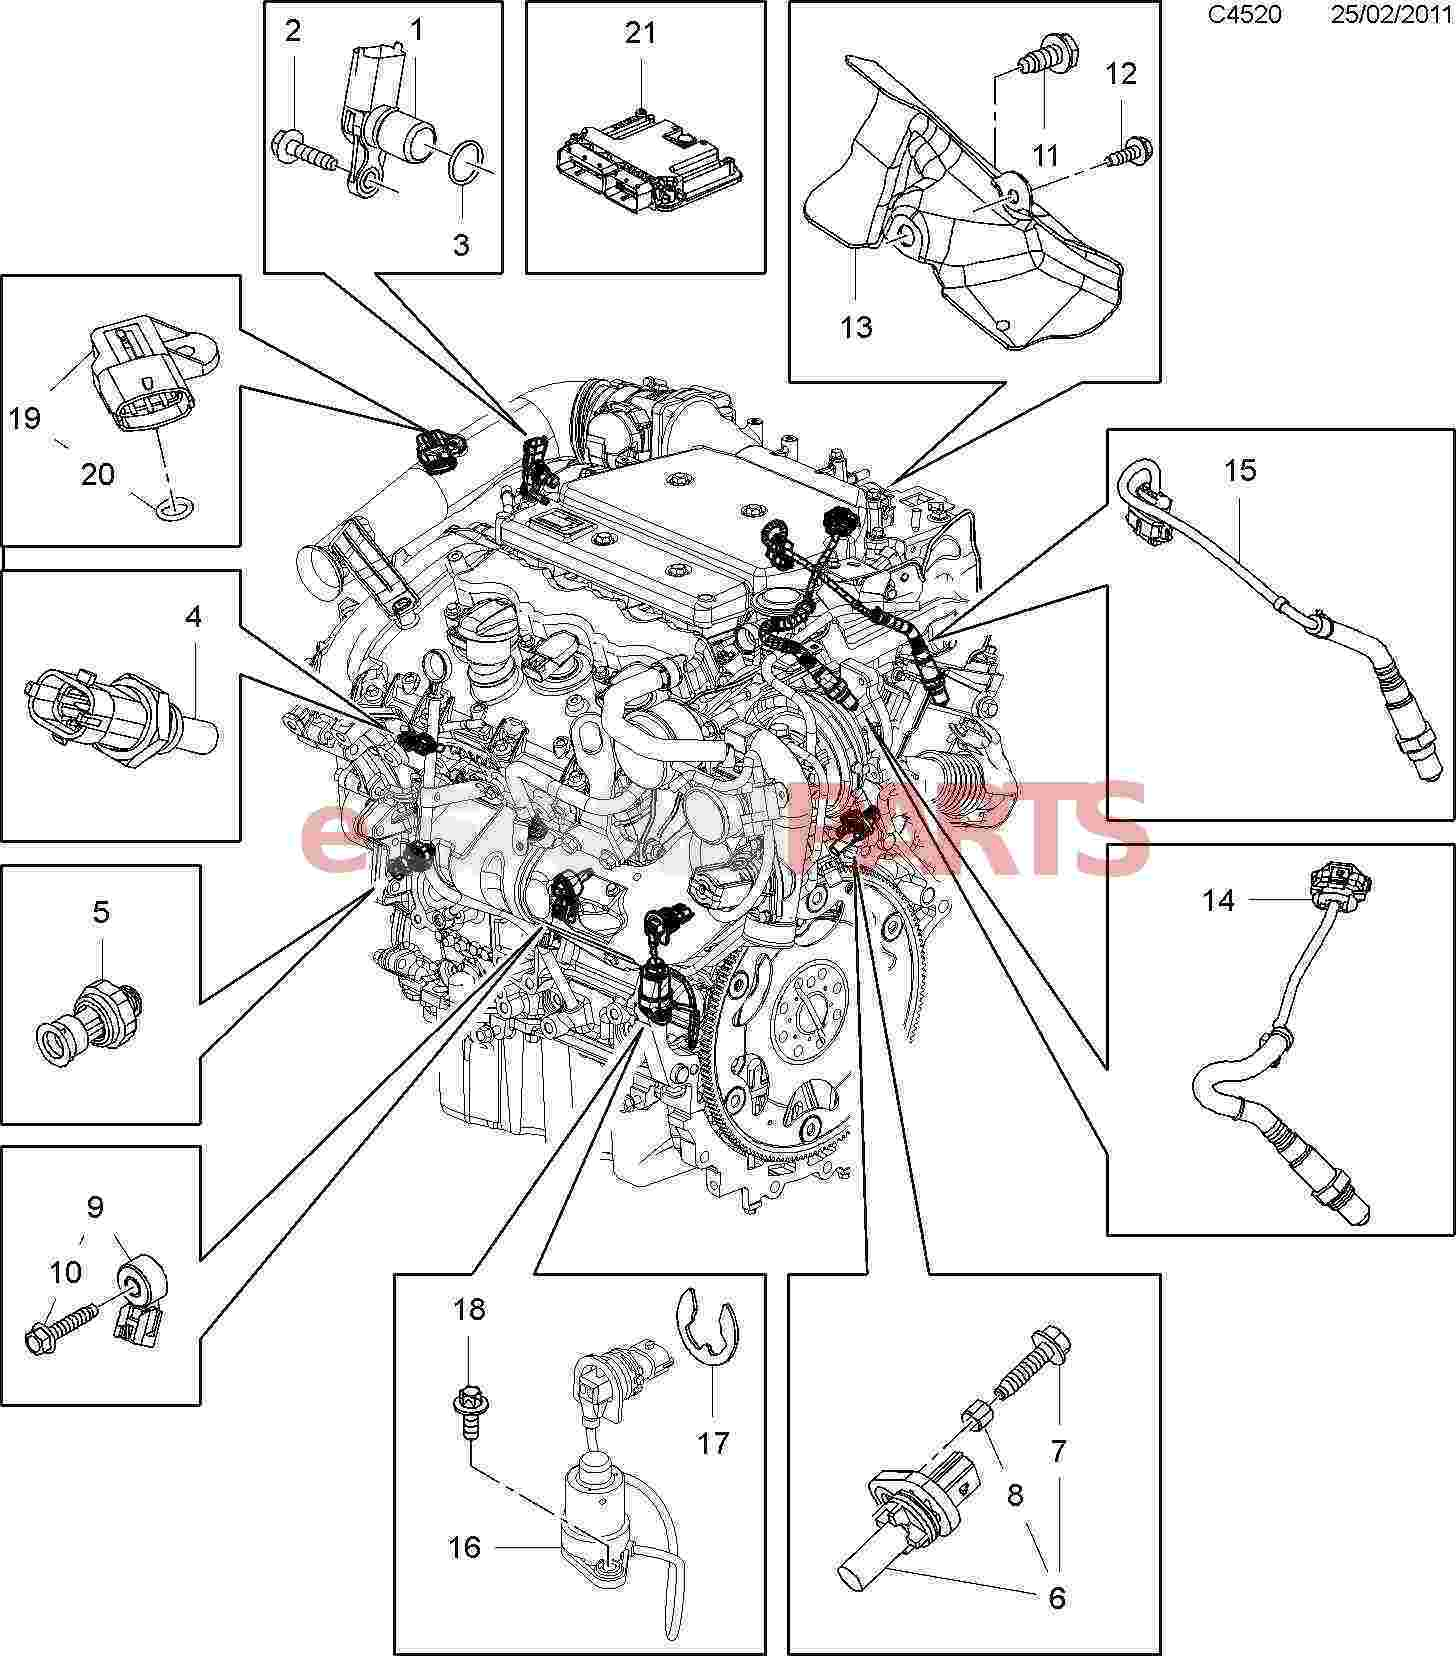 Nissan Vq30de Diagram moreover Subaru Ej20 Wiring Harness besides 93 Nissan 240sx Engine Diagram Get Free Image About likewise 145792 Termostato De Nissan Quest 93 further P 0900c15280088e4b. on 93 nissan d21 engine diagram